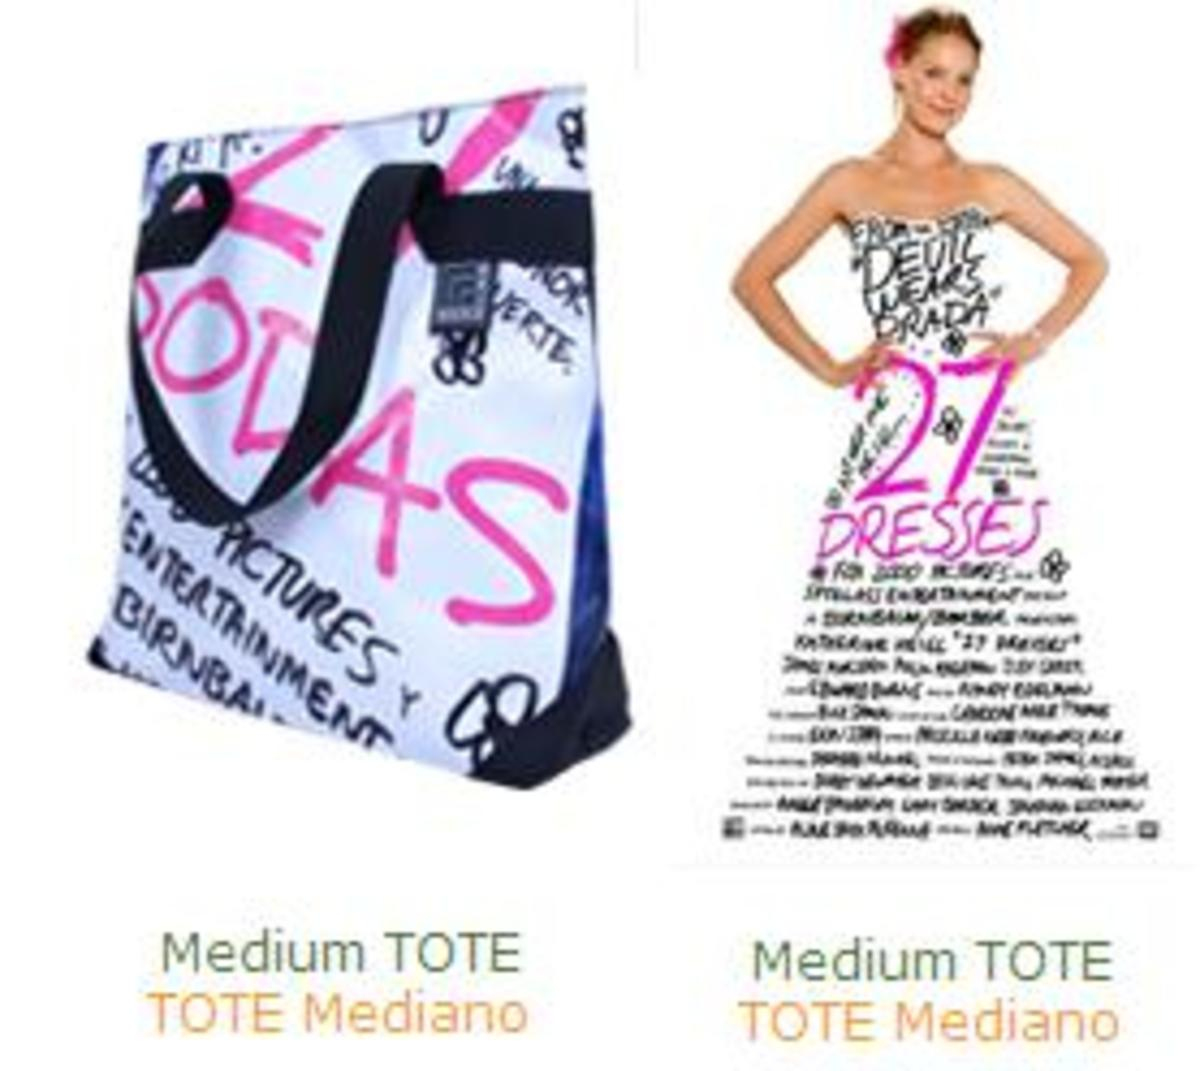 Modulab tote bag made from the banner of the movie 27 Dresses